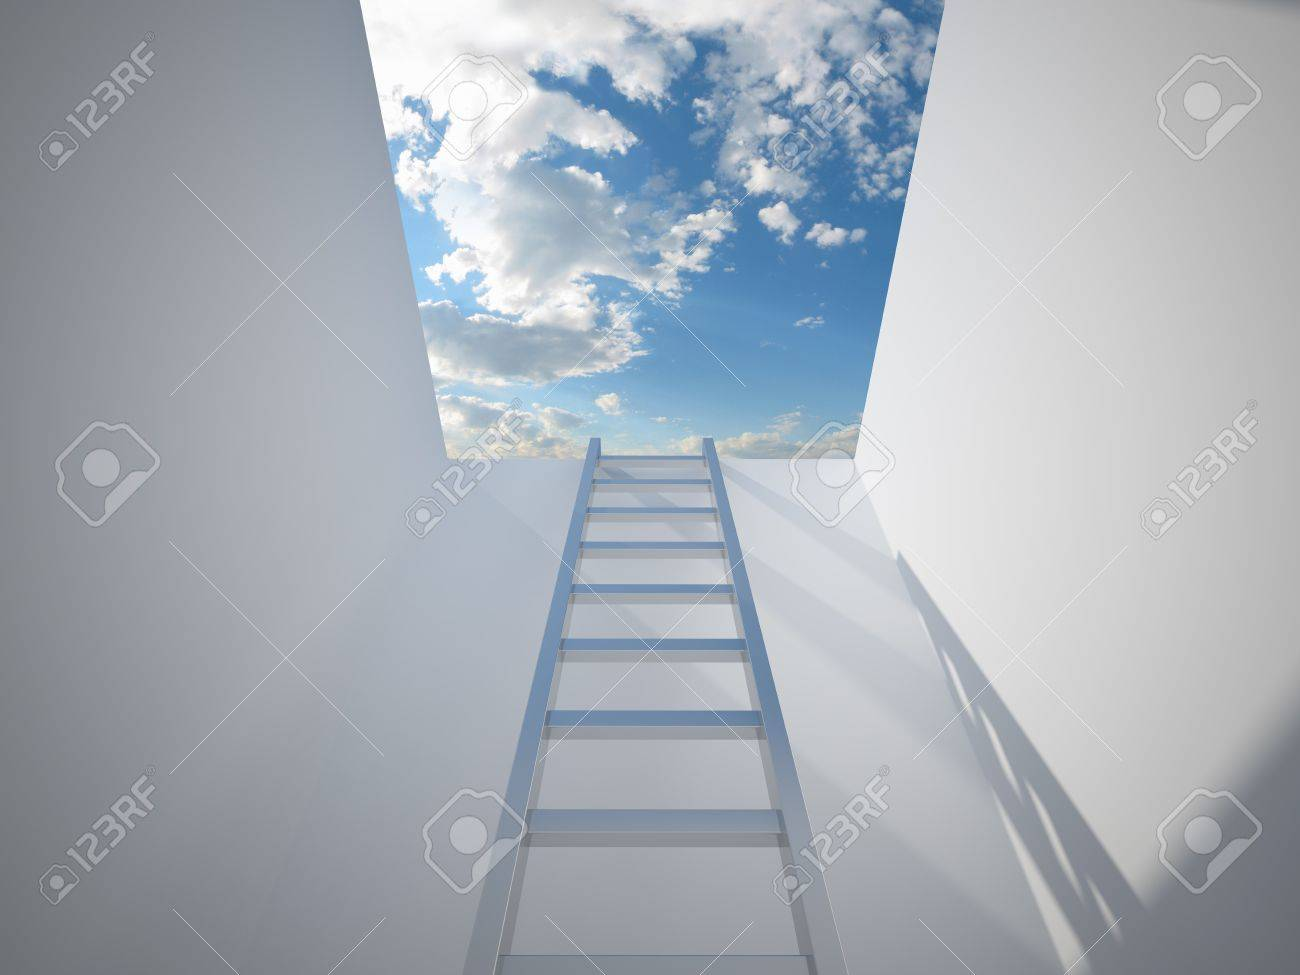 Ladder leading up to the light Stock Photo - 9807964